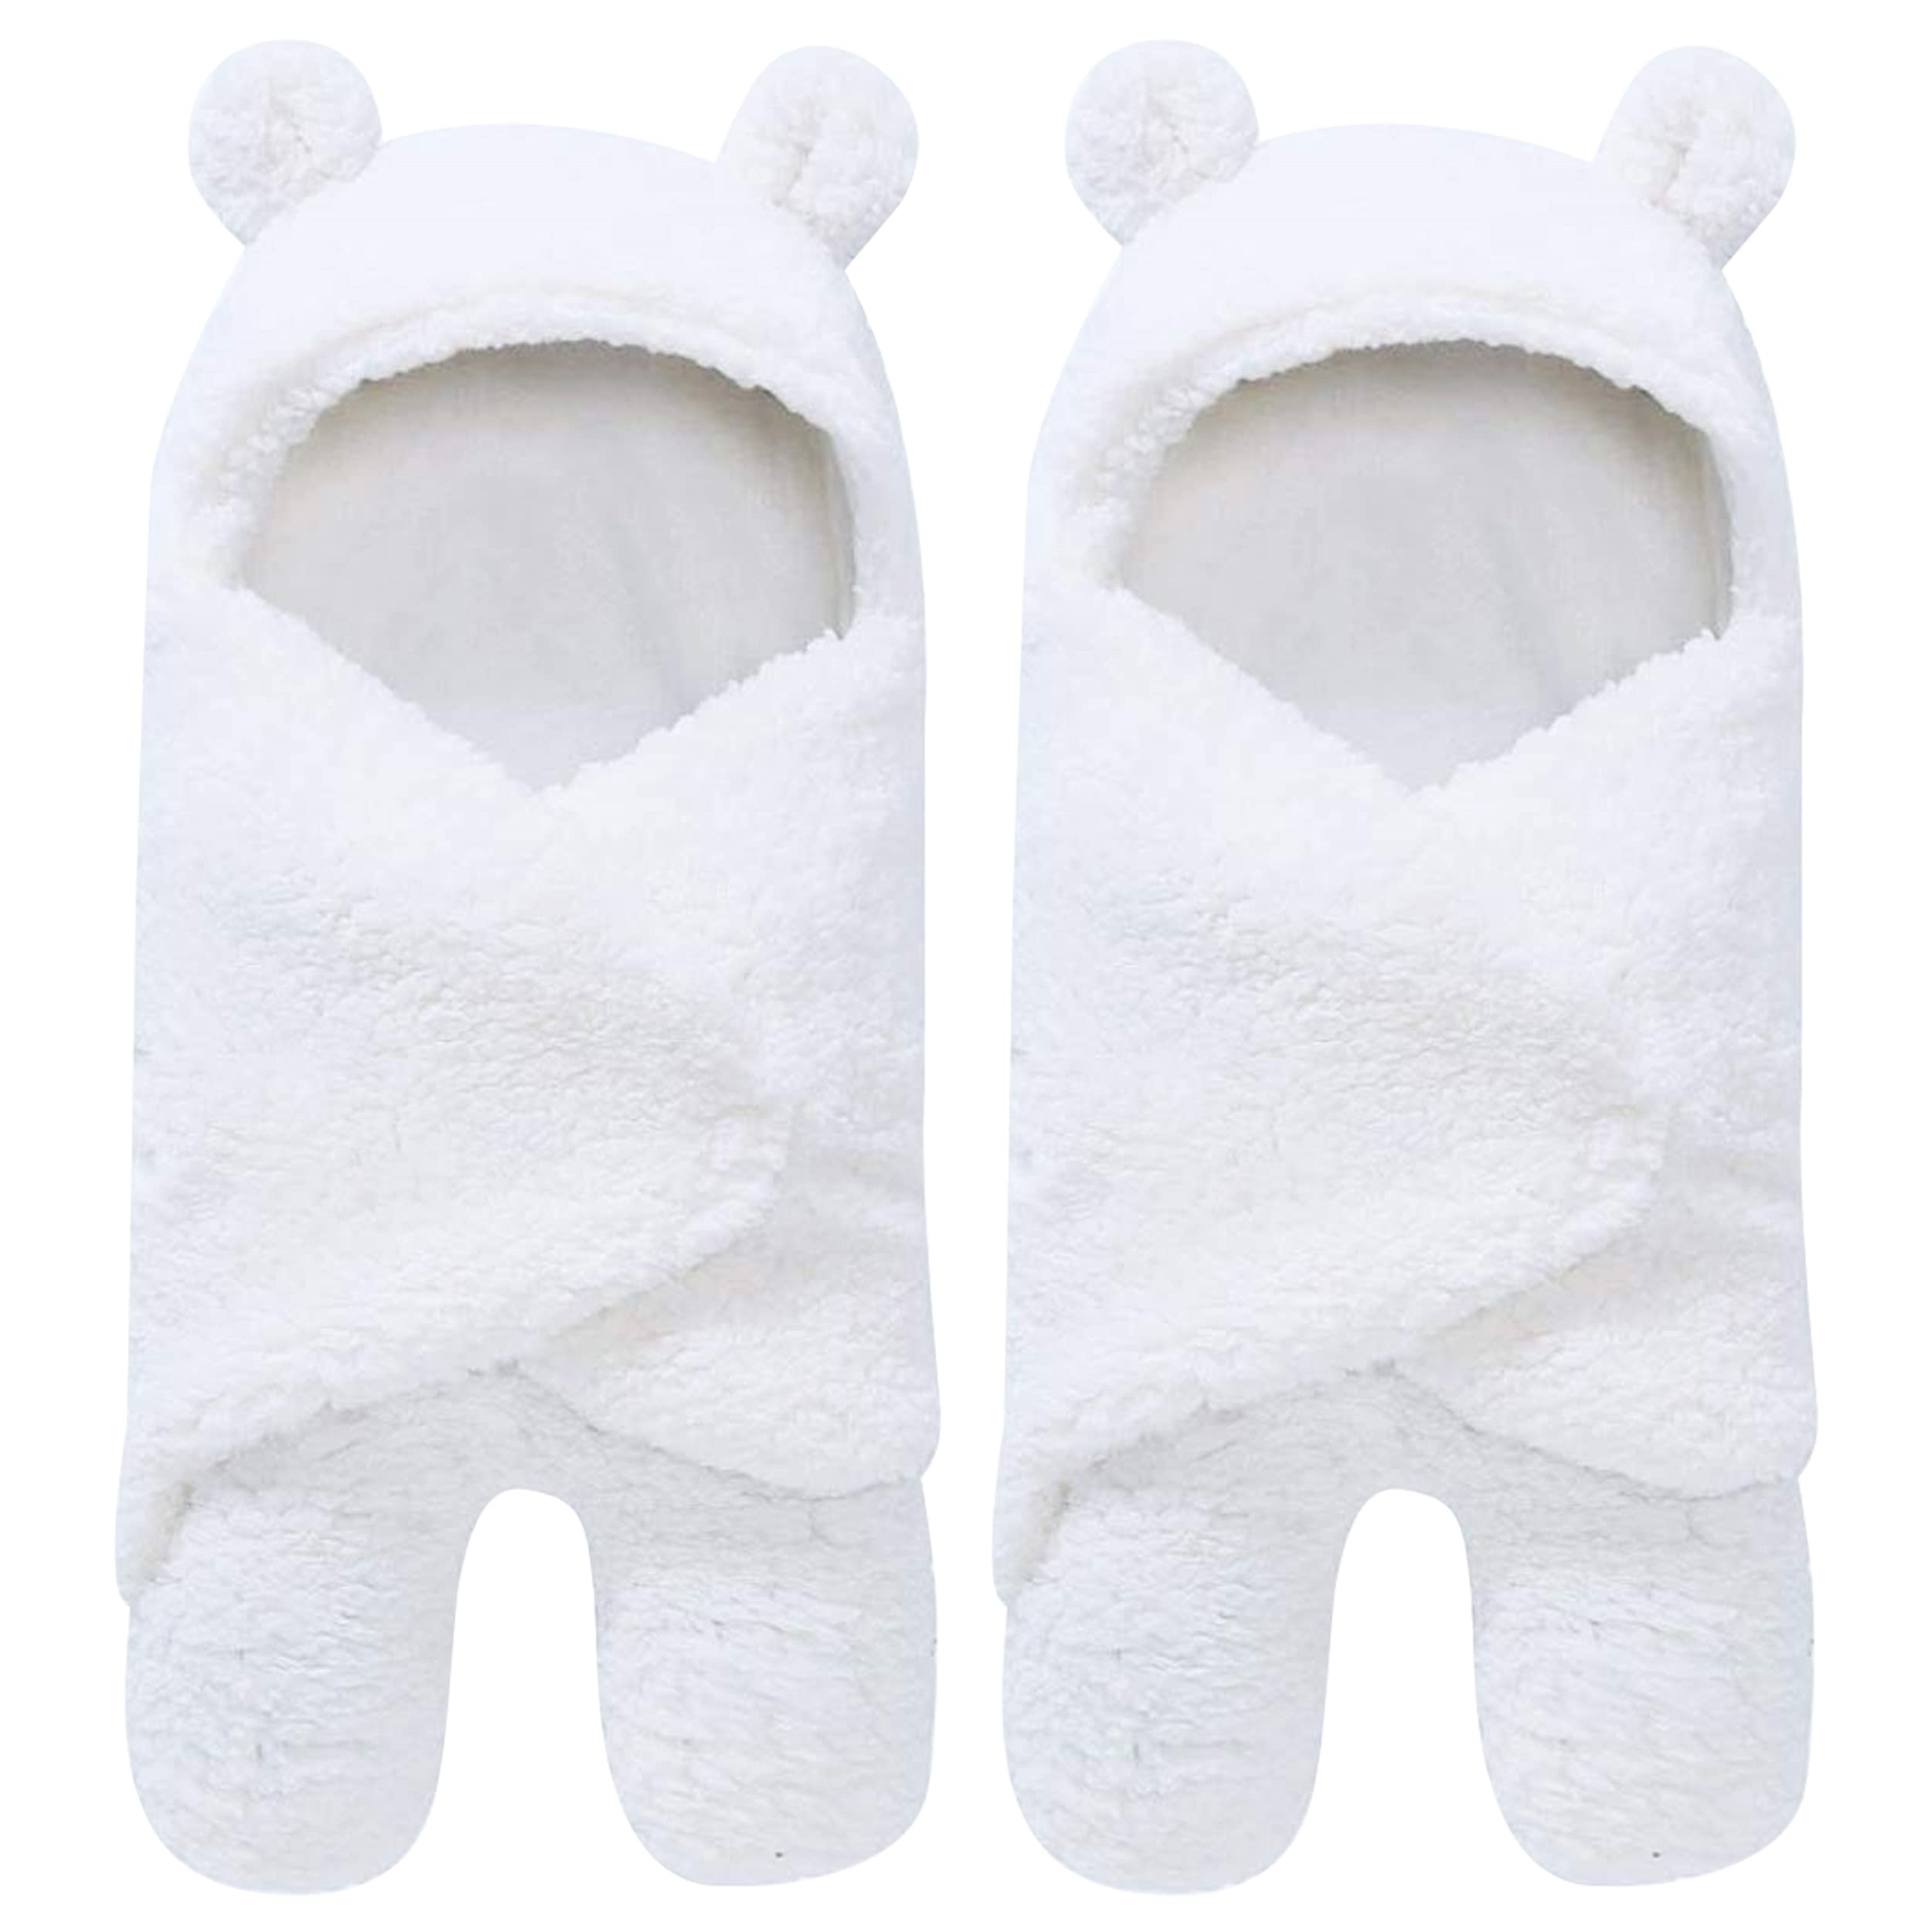 2 Pack Sherpa Baby Swaddle Blanket – Ultra Soft Plush Essential for